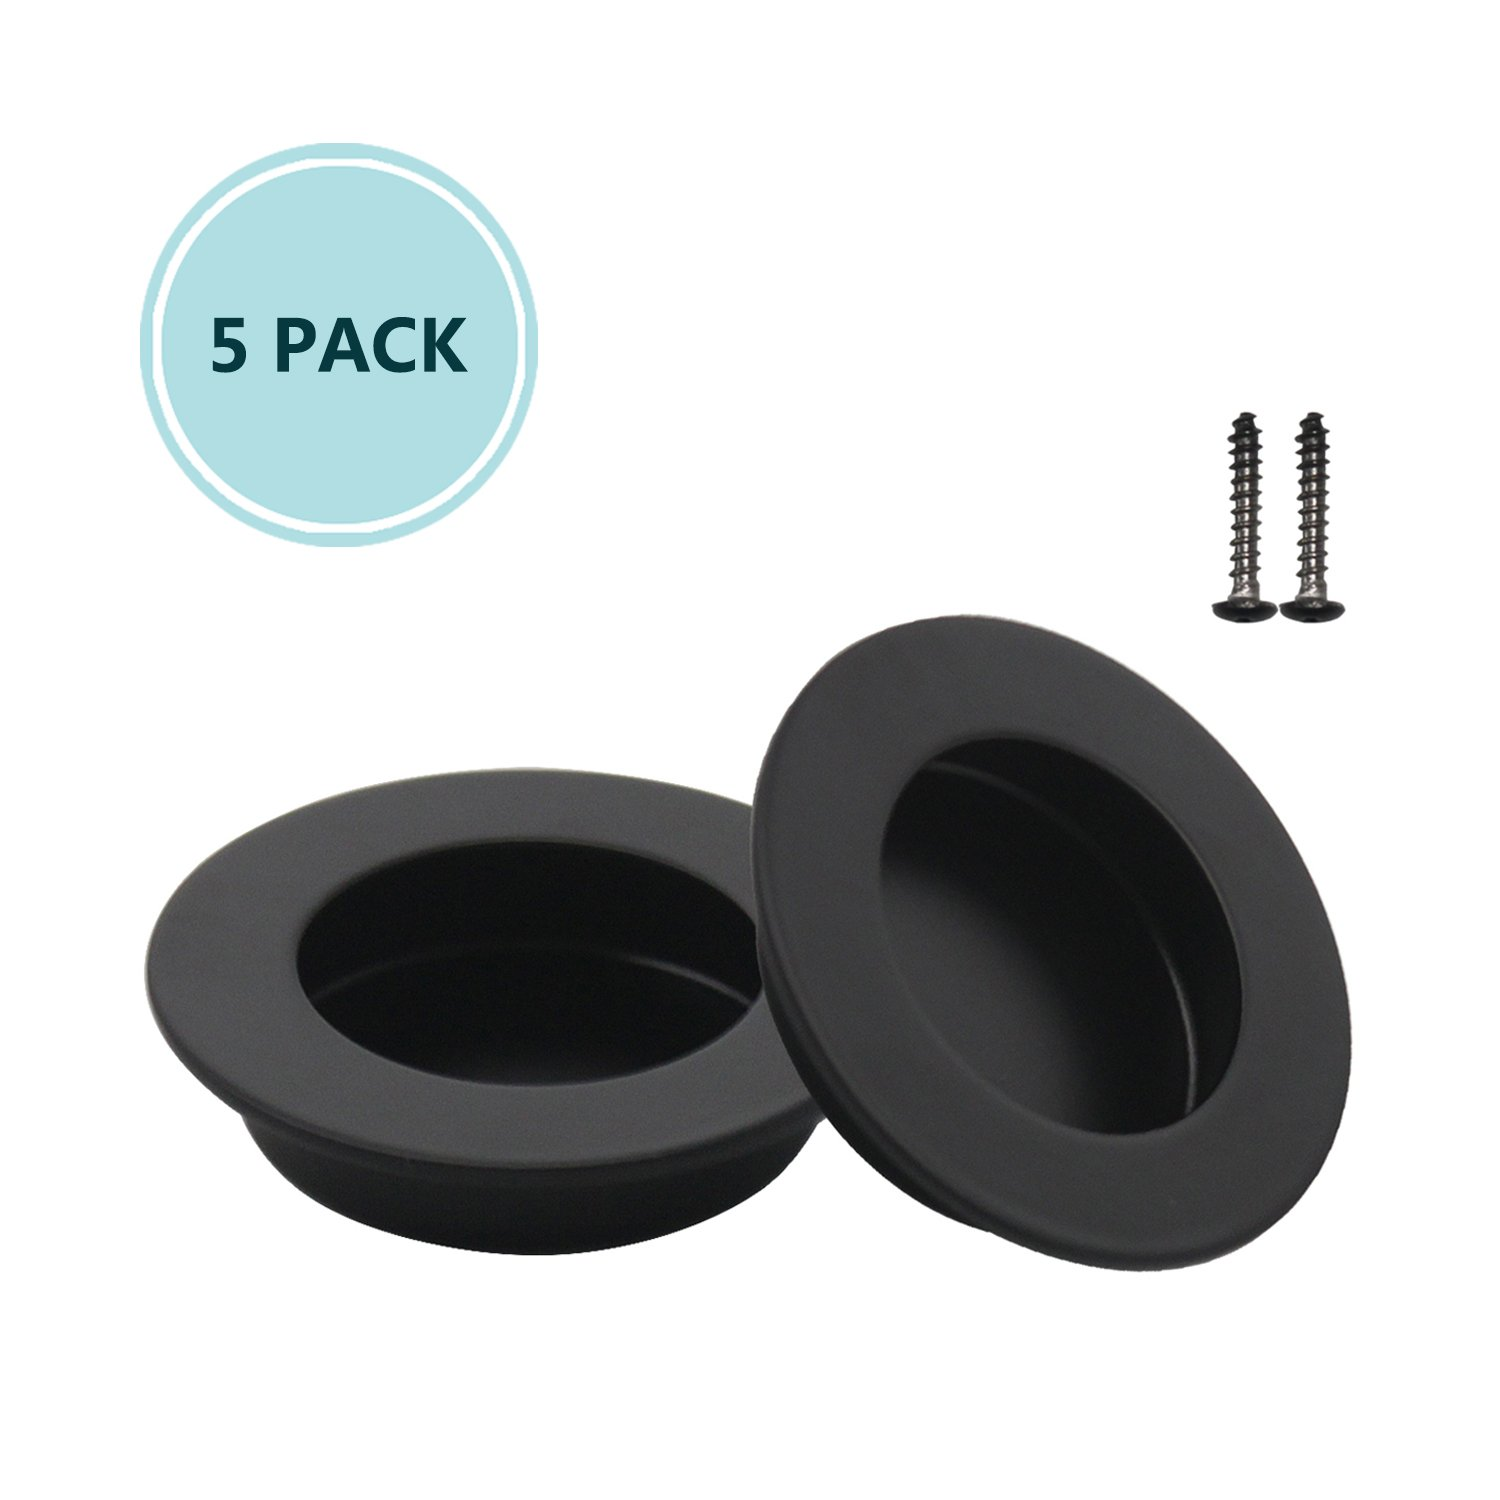 Black Interior & Closet Door Pulls Round 65mm/2-1/2'' Flushed Pulls Door Handles 304 Stainless Steel Finger Flushed Pulls Drawers Cabinet Recessed Knobs Hardware, 5 Pack